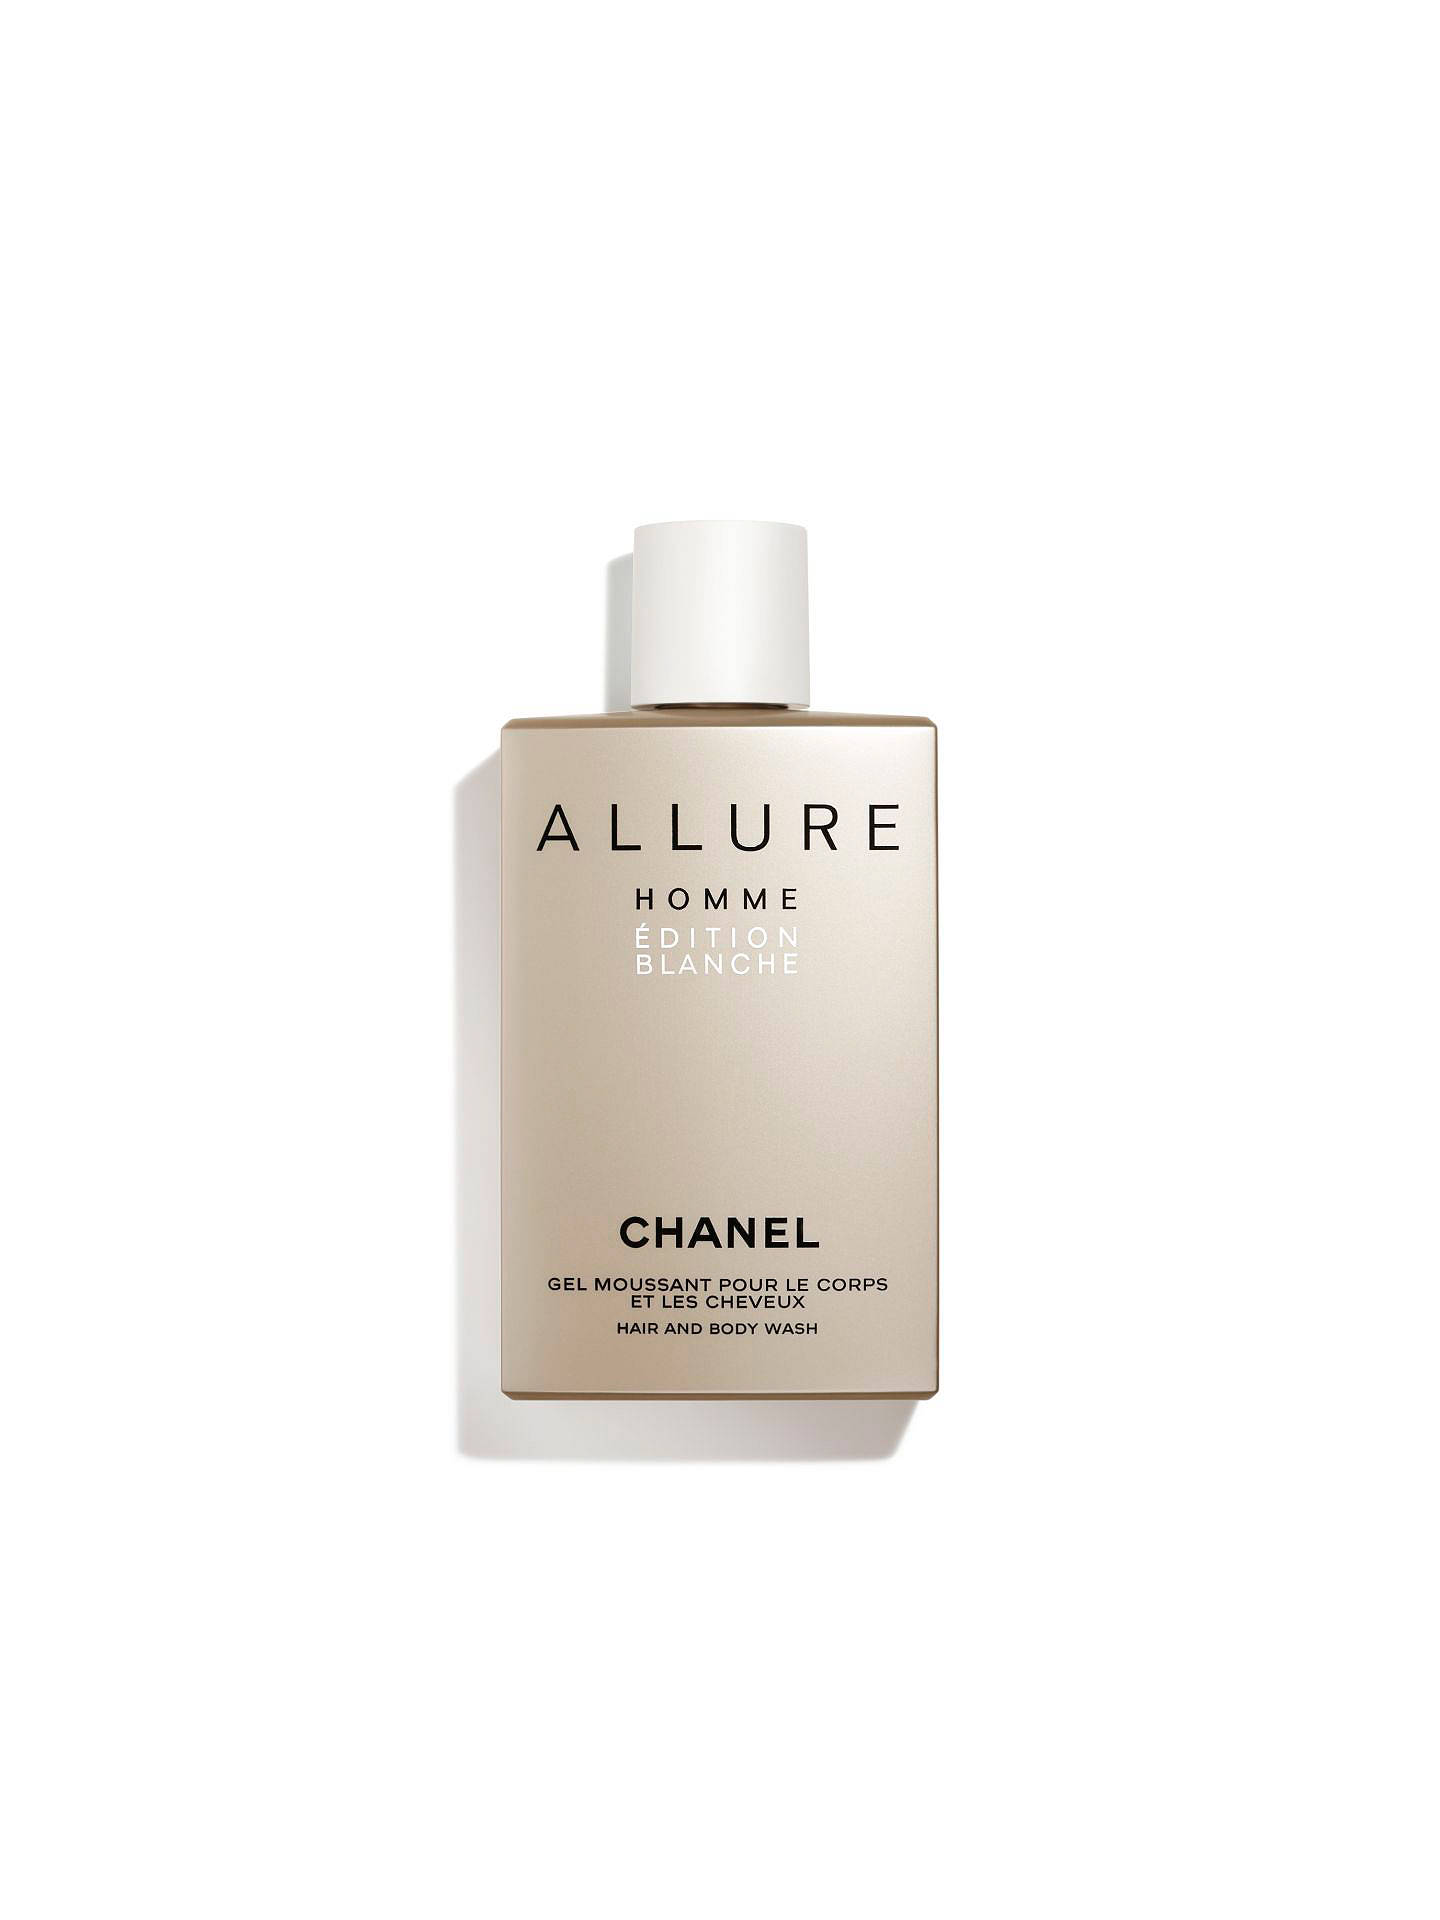 BuyCHANEL ALLURE HOMME ÉDITION BLANCHE Hair and Body Wash Online at johnlewis.com